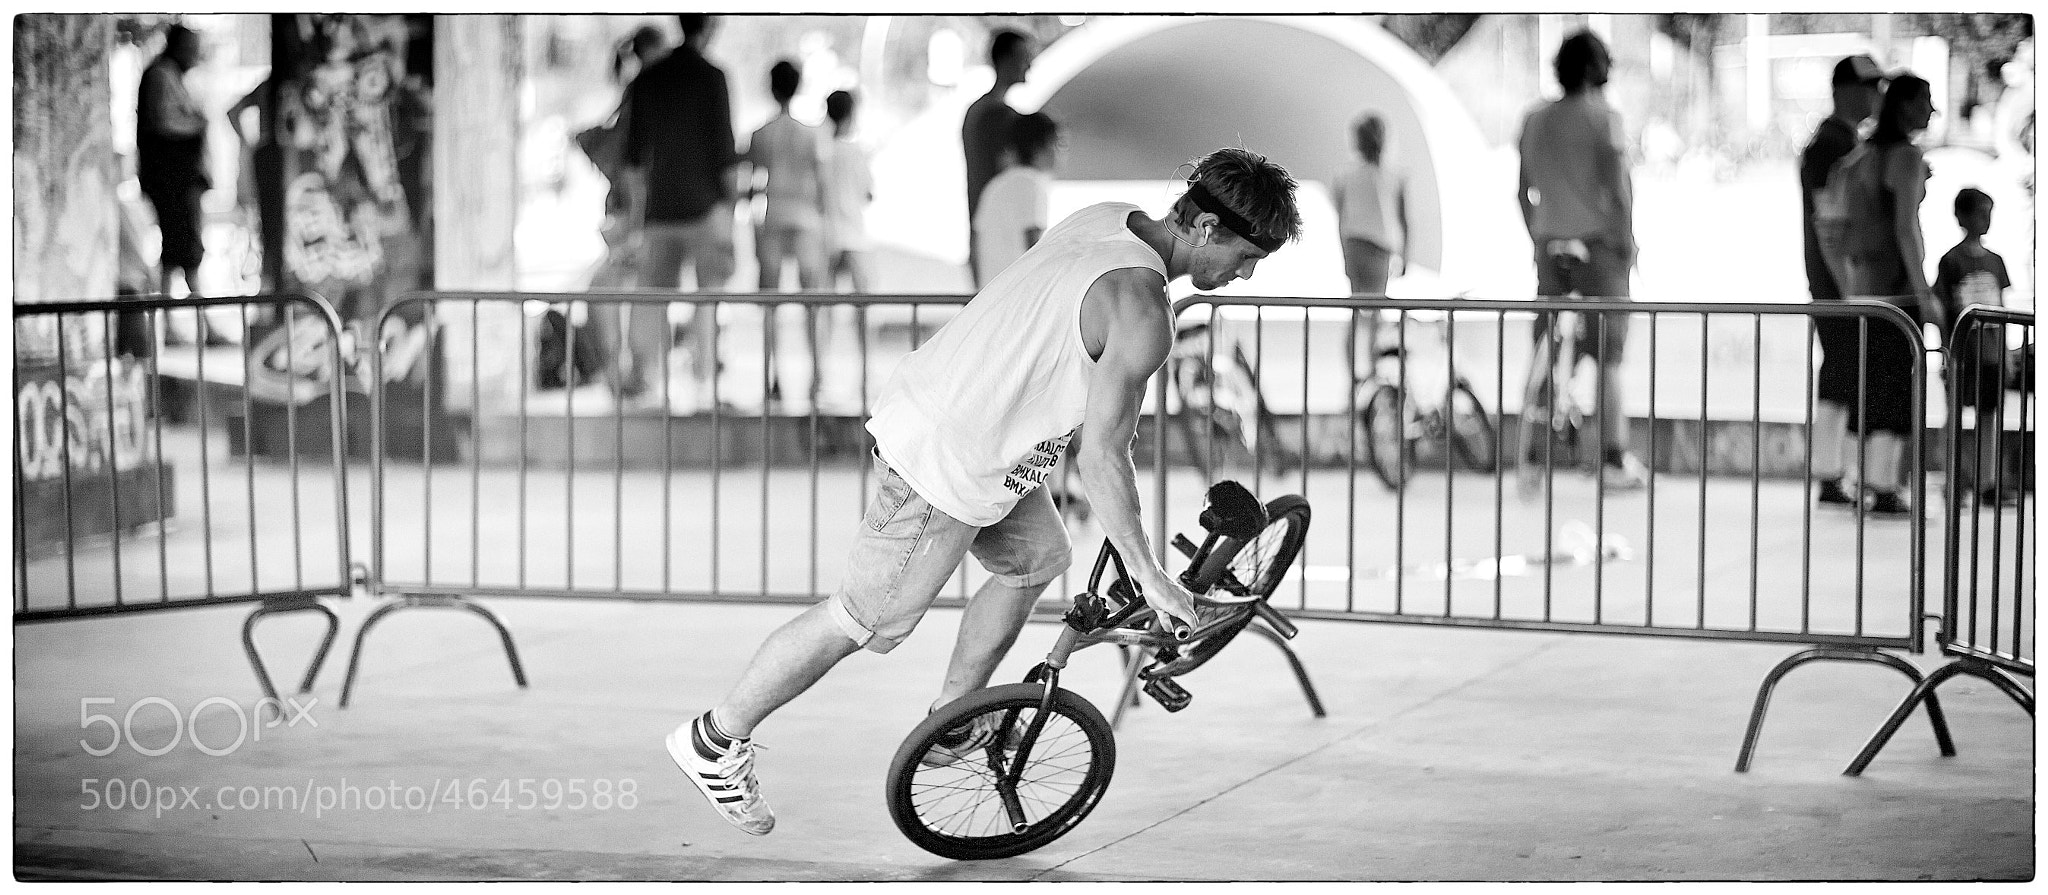 Photograph Two Wheel Tango by Fouquier  on 500px